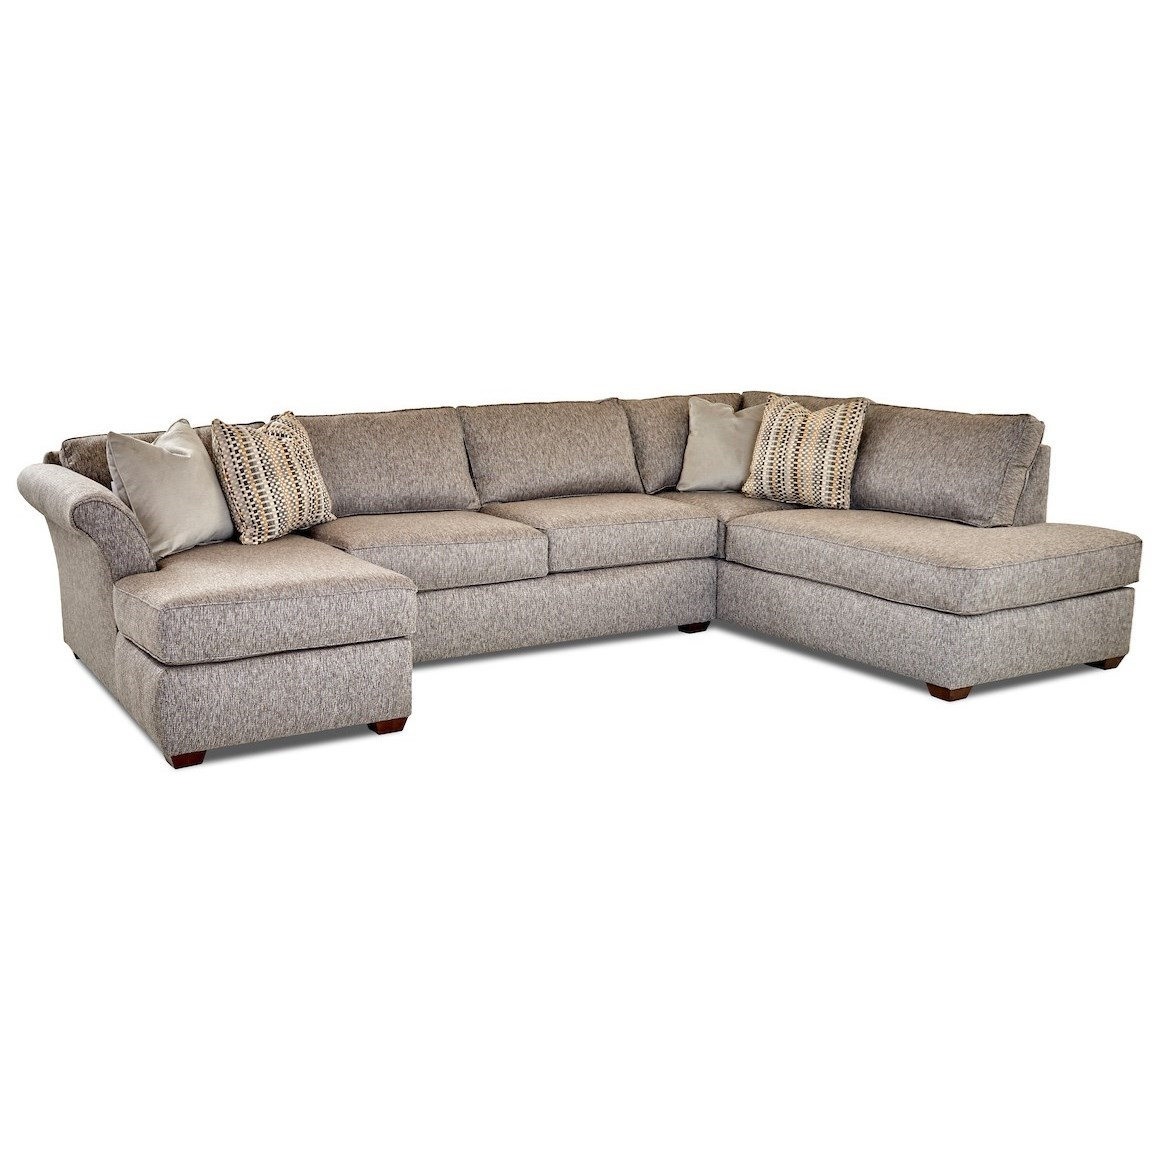 Jaxon 3 Pc Sectional Sofa by Klaussner at Johnny Janosik